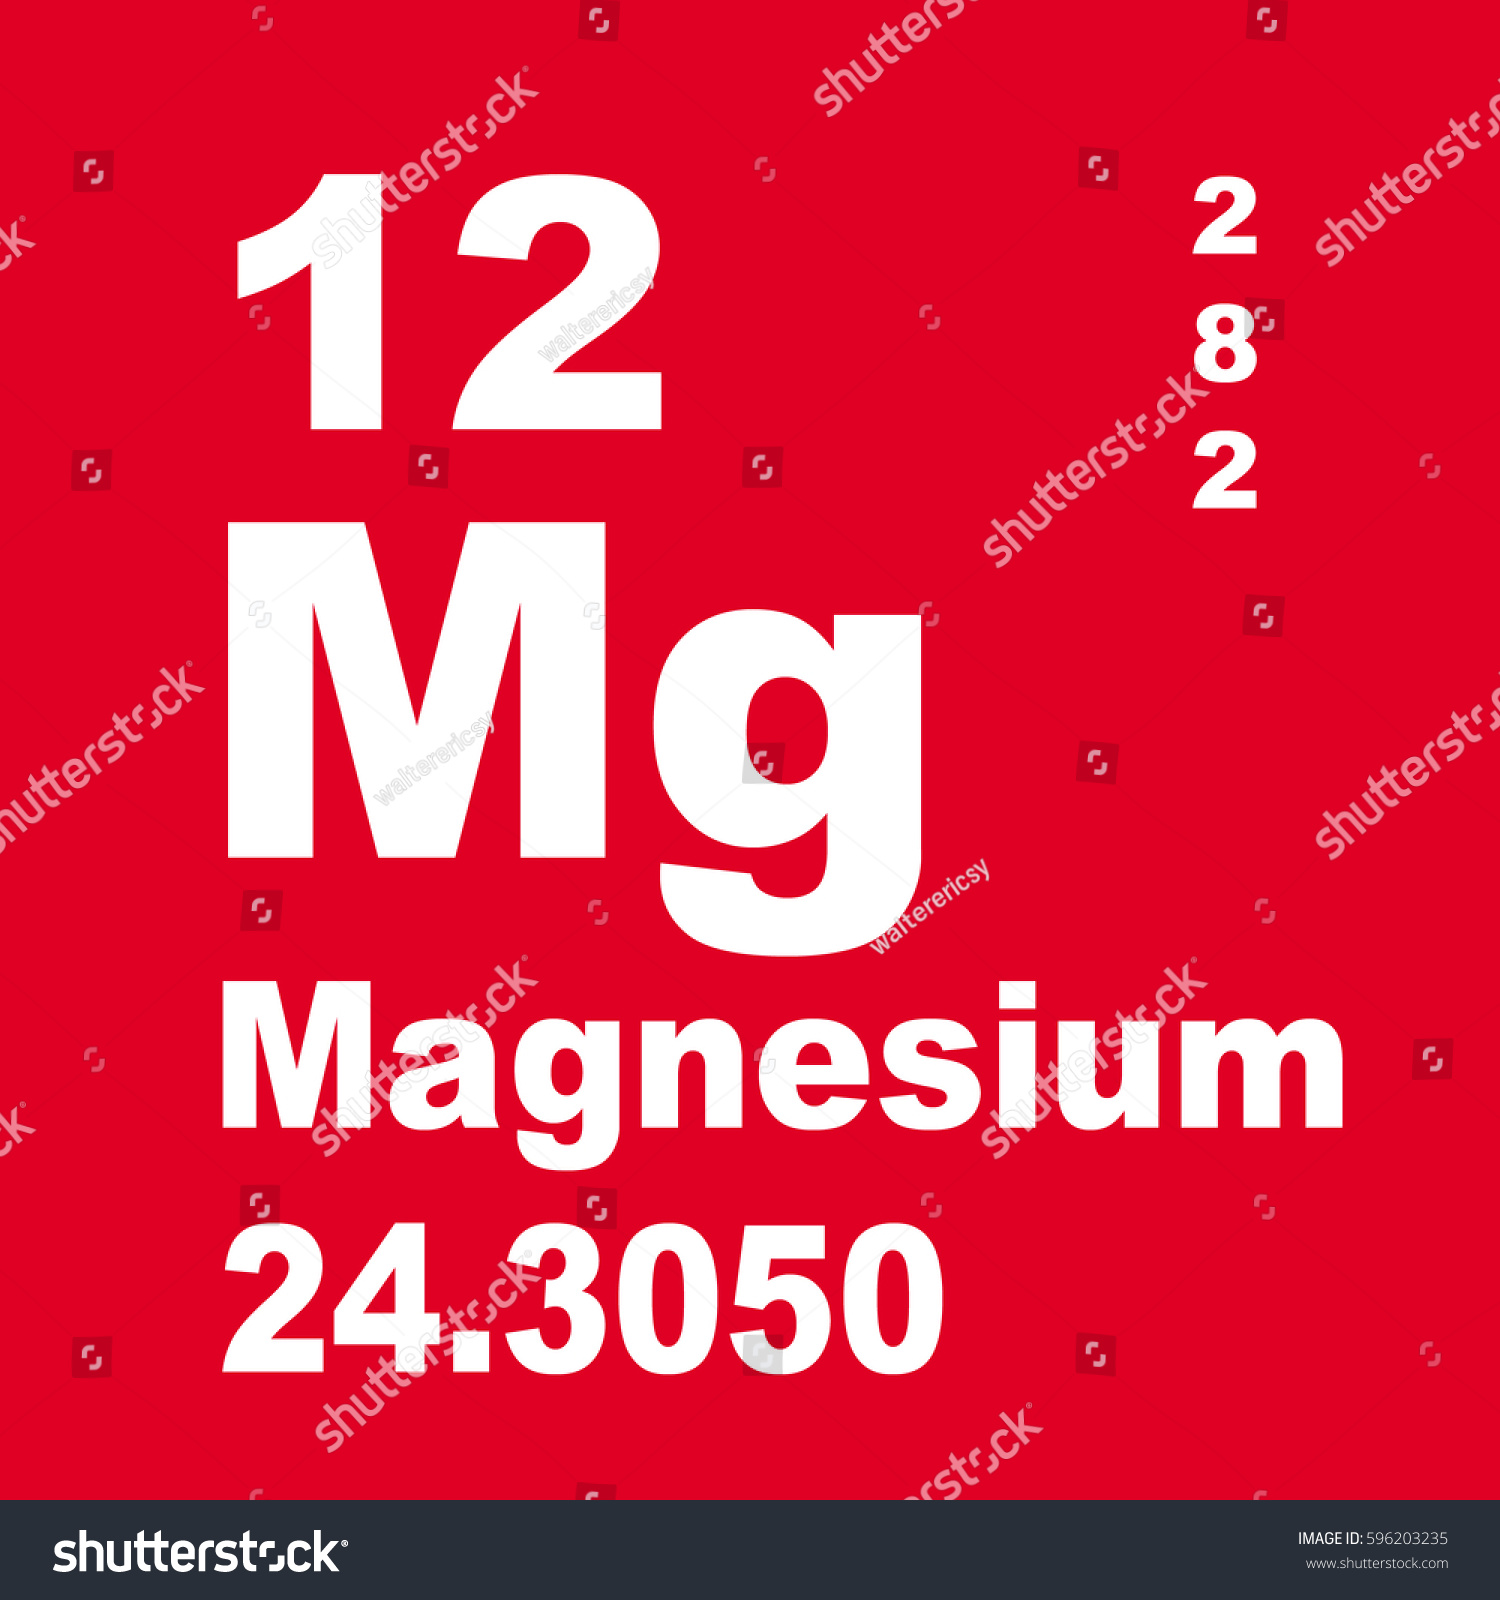 Magnesium periodic table elements stock illustration 596203235 magnesium periodic table of elements gamestrikefo Gallery